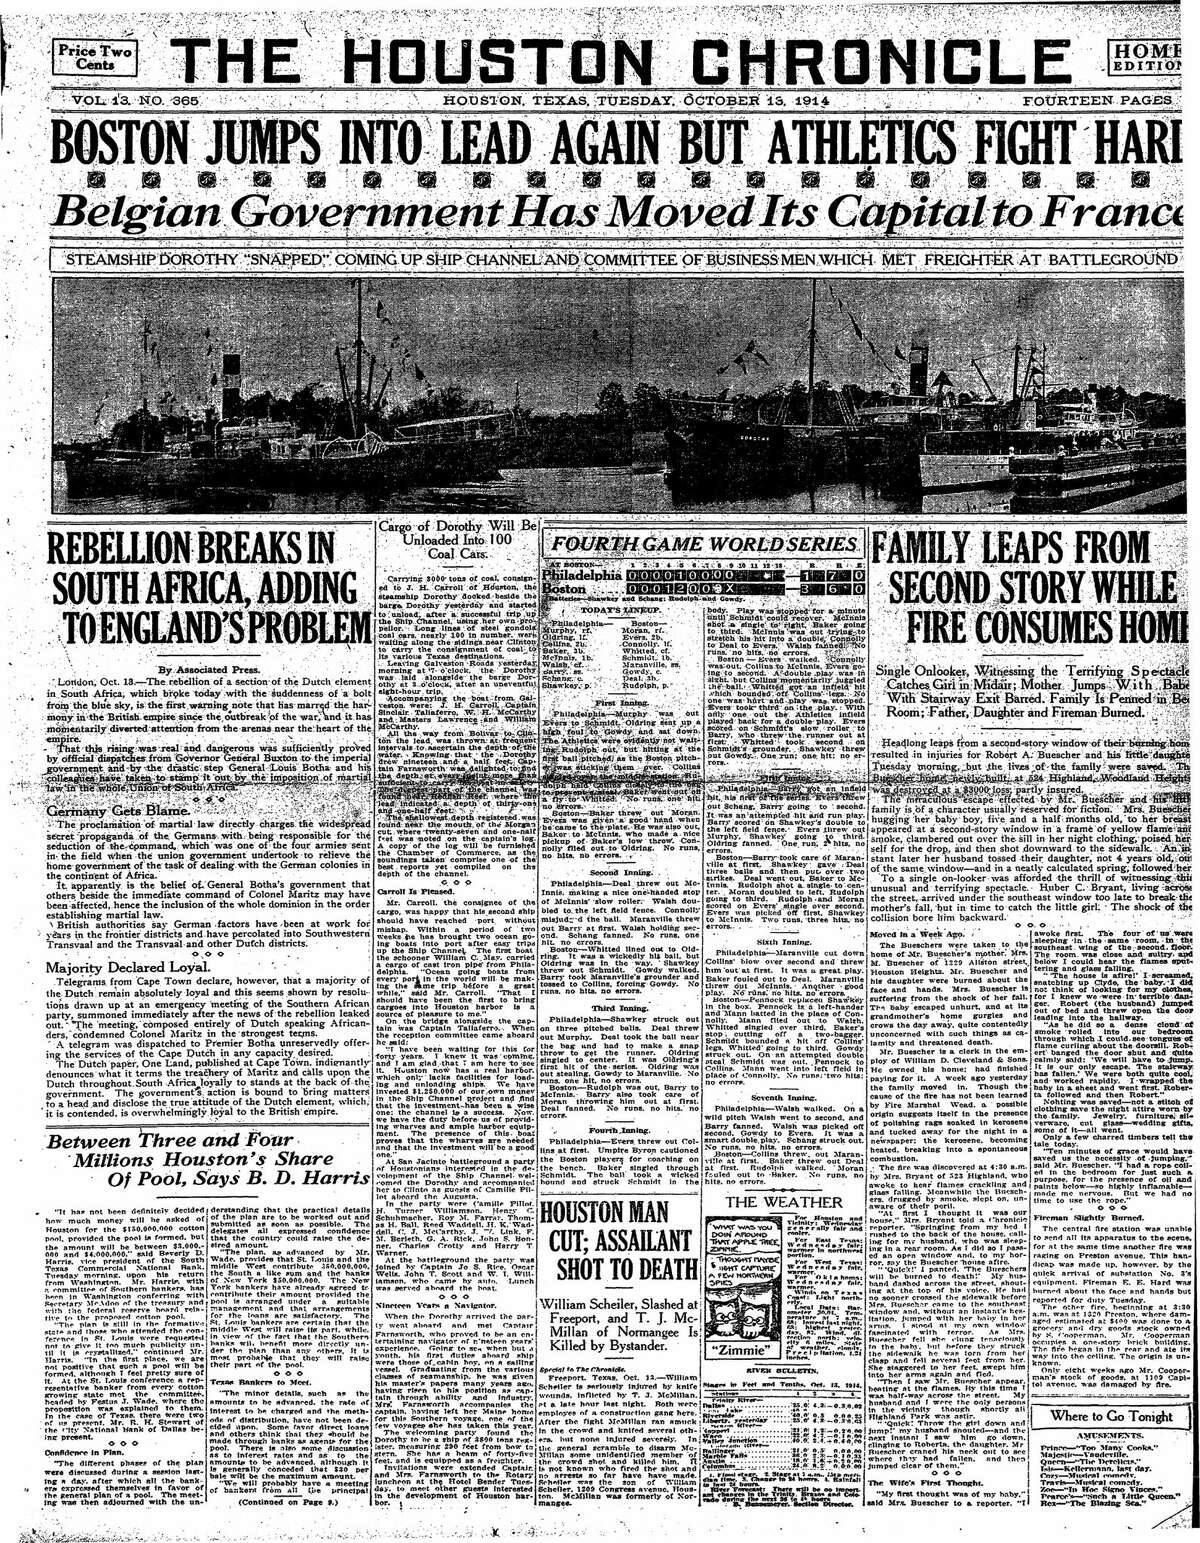 Houston Chronicle front page from Oct. 13, 1914.